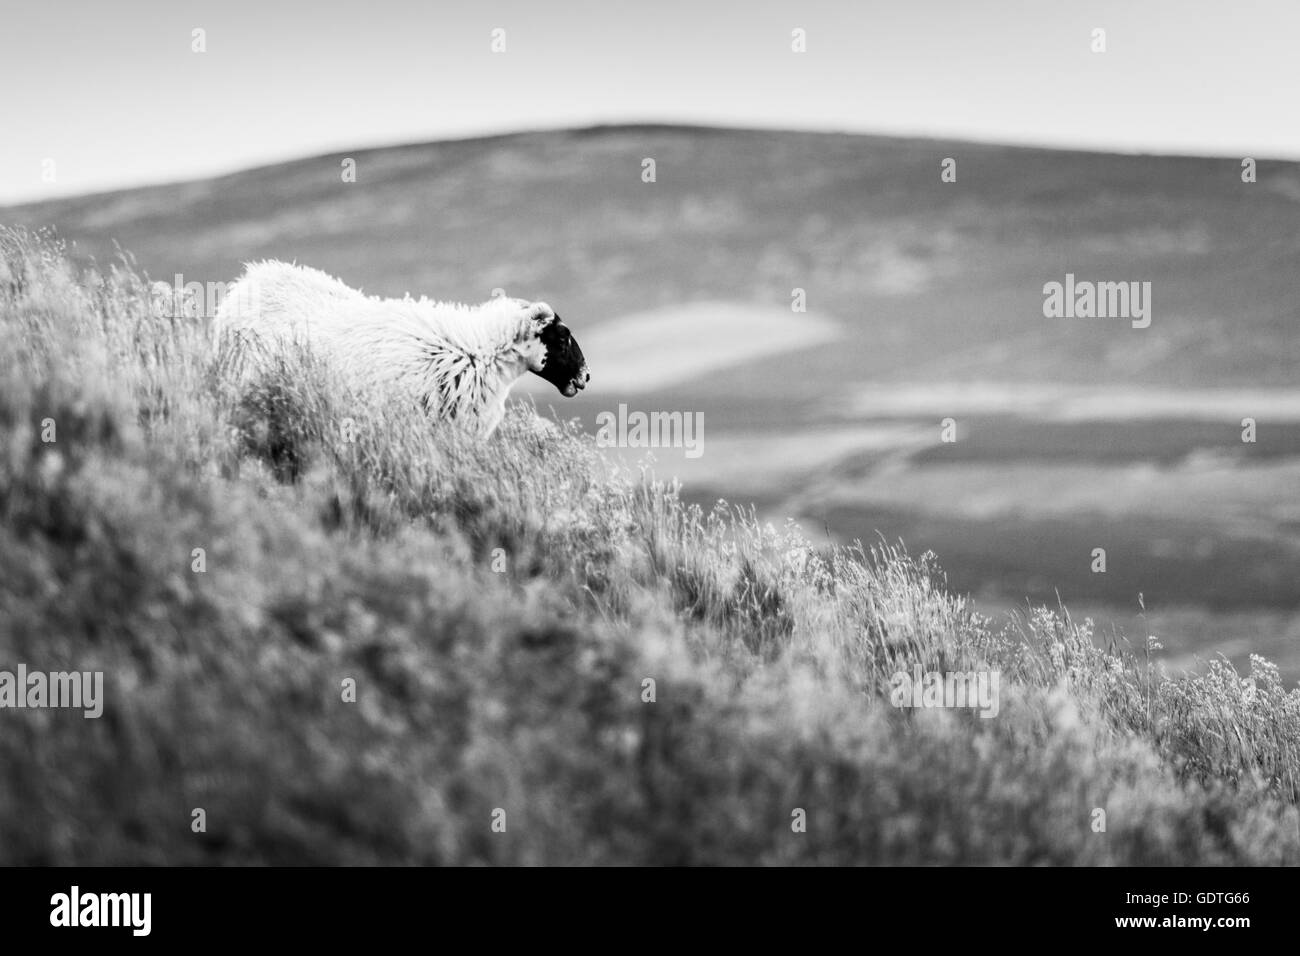 A Scottish Blackface sheep in the wild grasses of the Cheviot Hills in Northumberland, black and white livestock - Stock Image